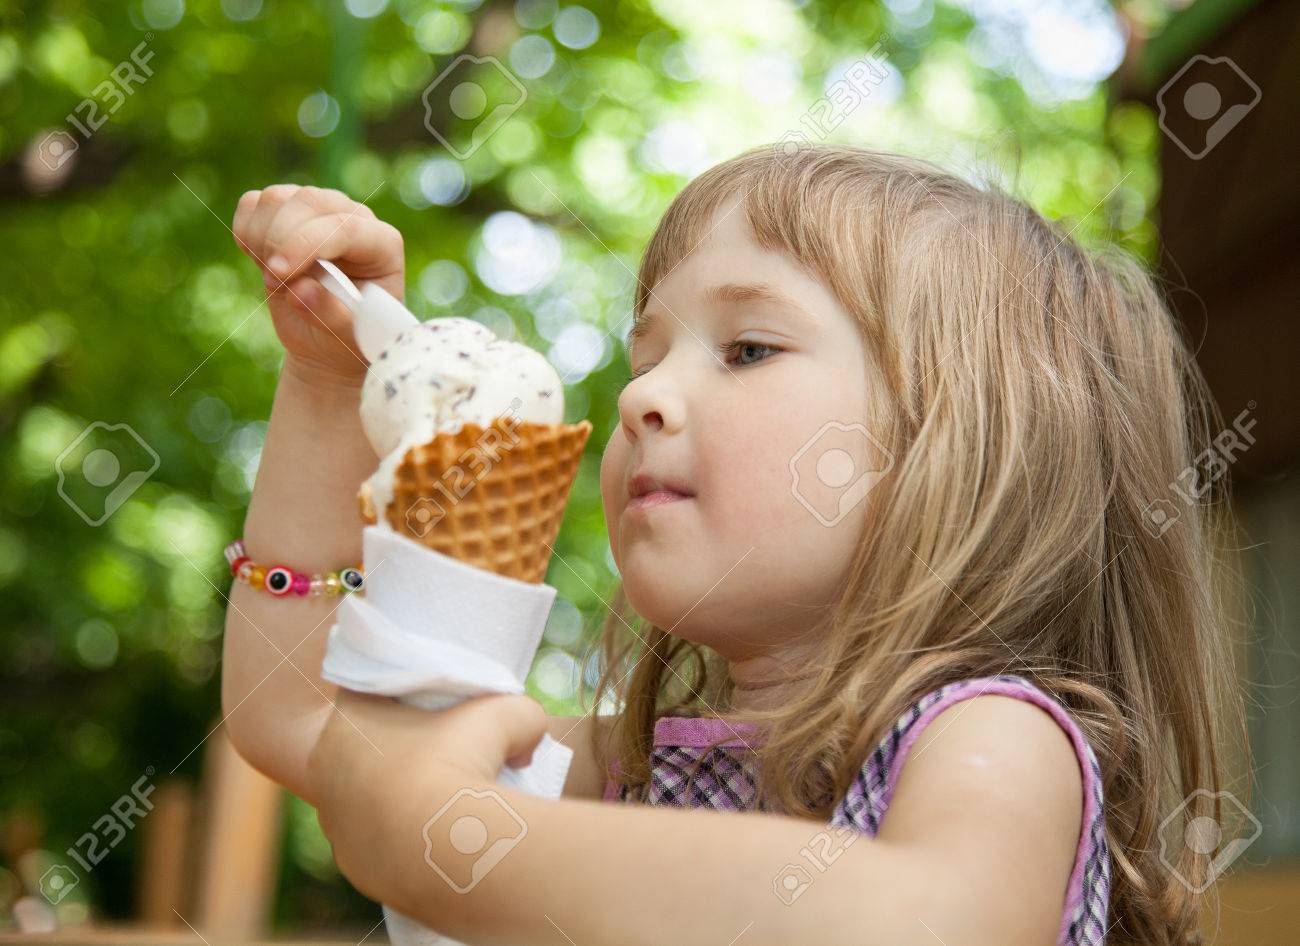 Pretty little girl eating an ice cream outdoors - 31547762